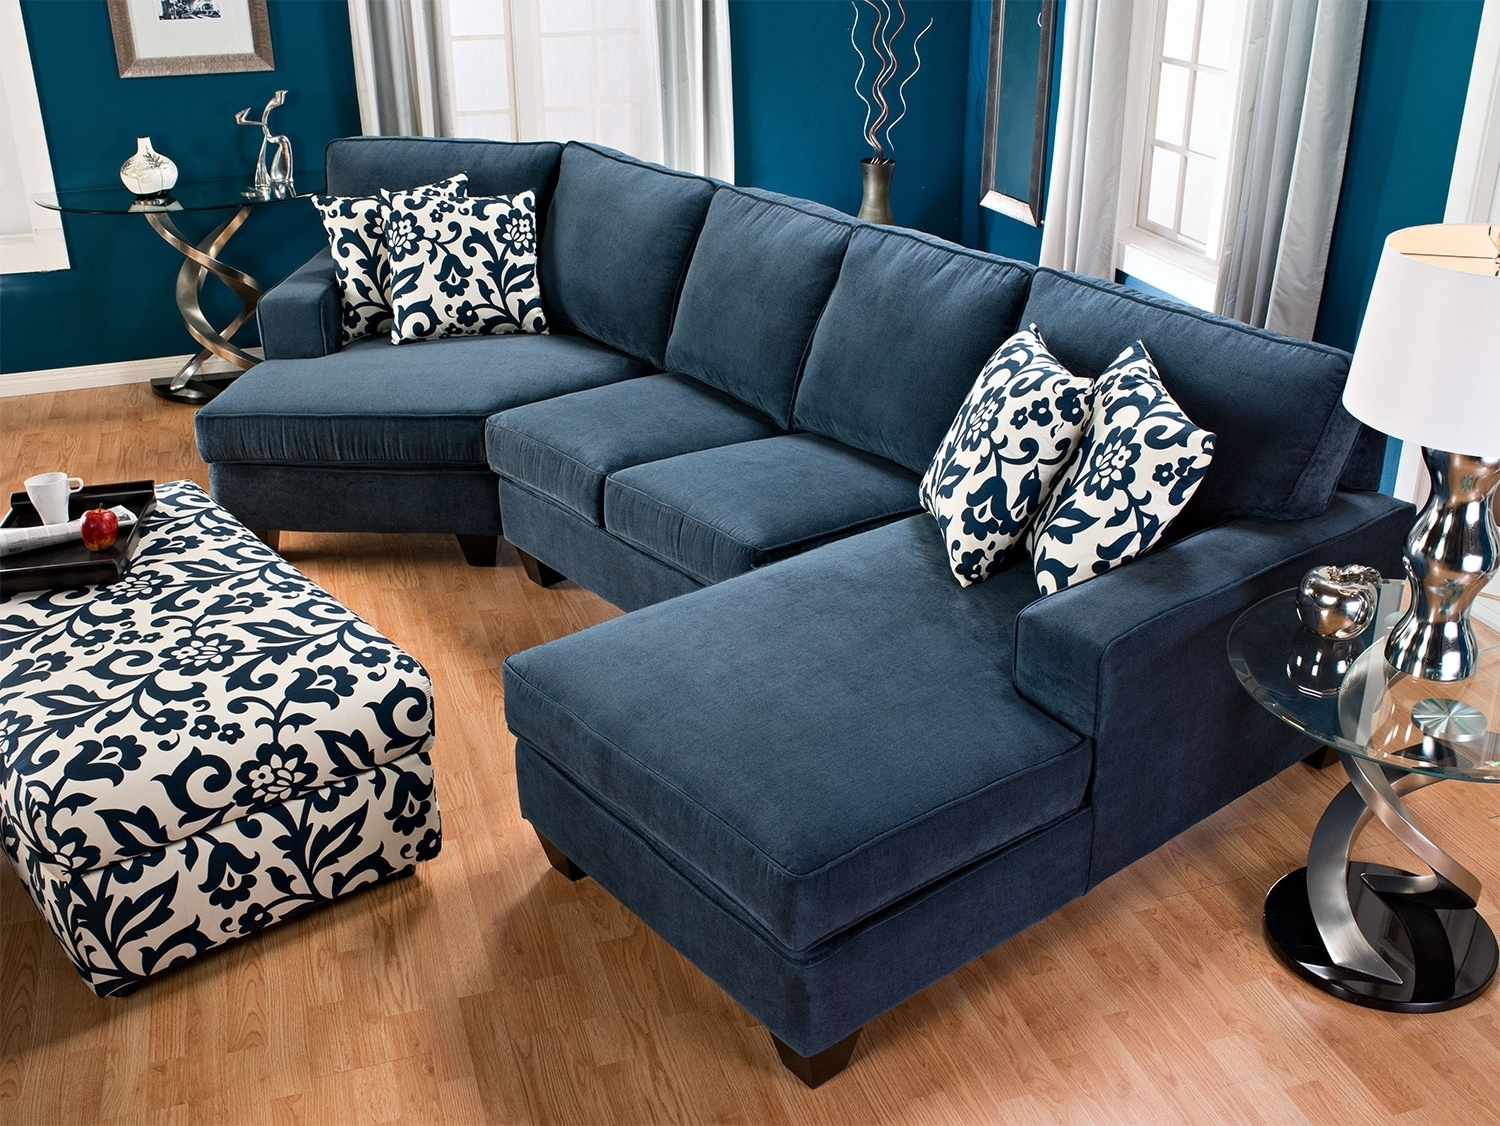 Www.allaboutyouth With Regard To Most Up To Date The Brick Sectional Sofas (Gallery 10 of 20)